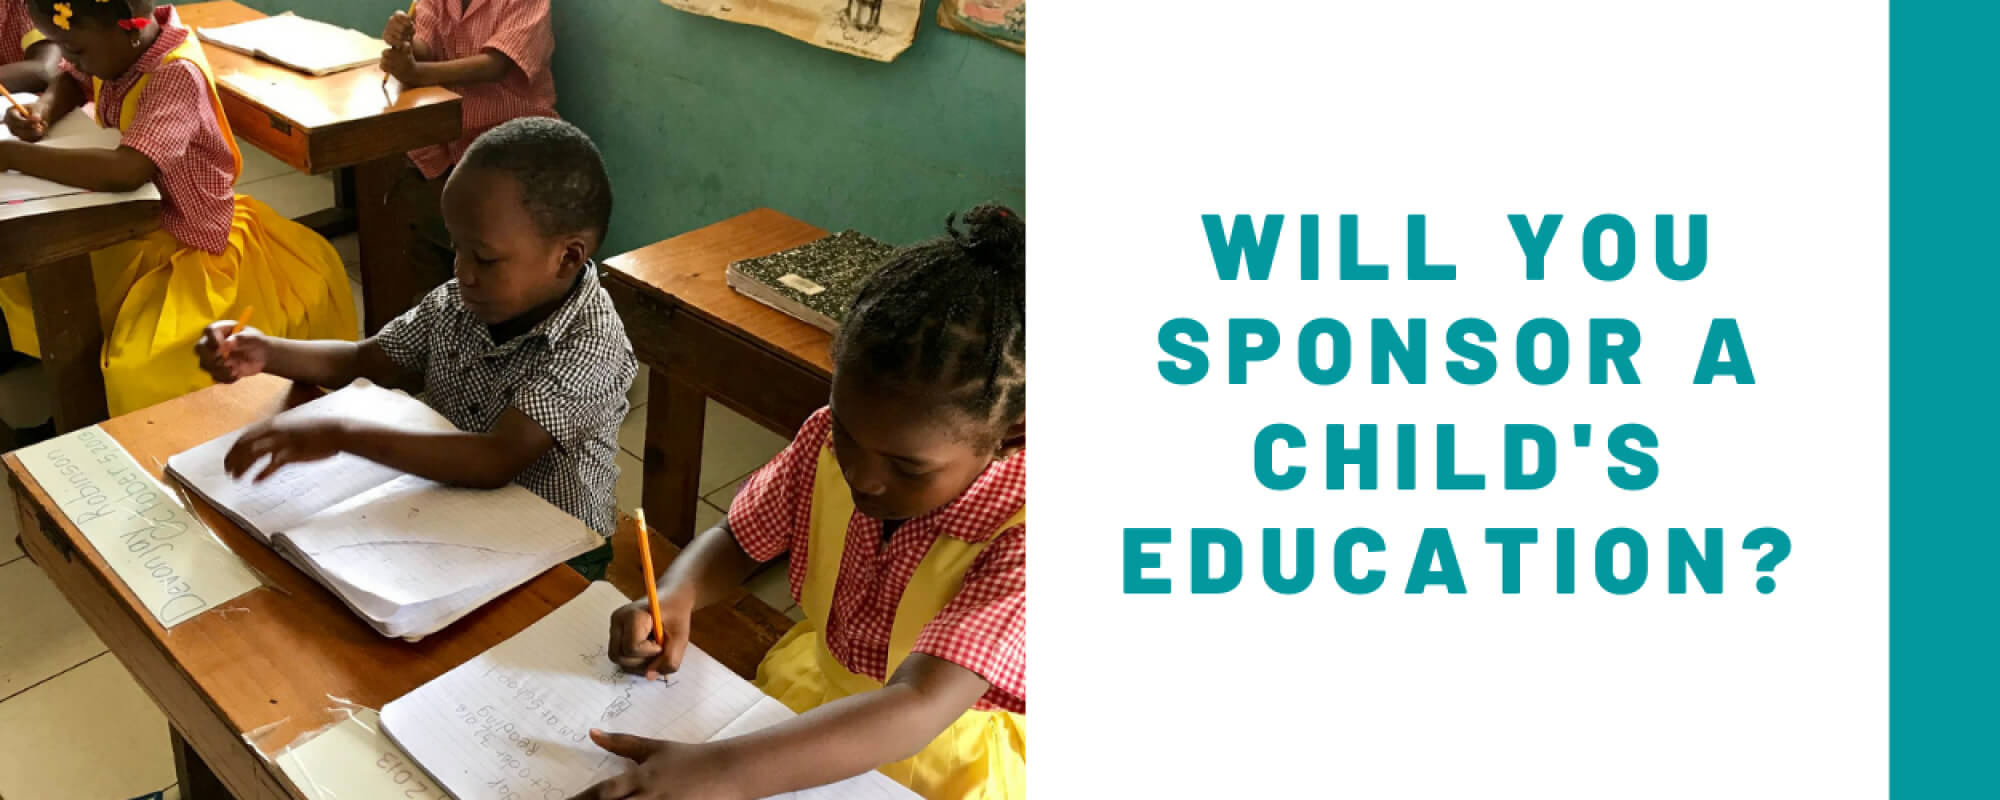 Will You Sponsor a Child's Education